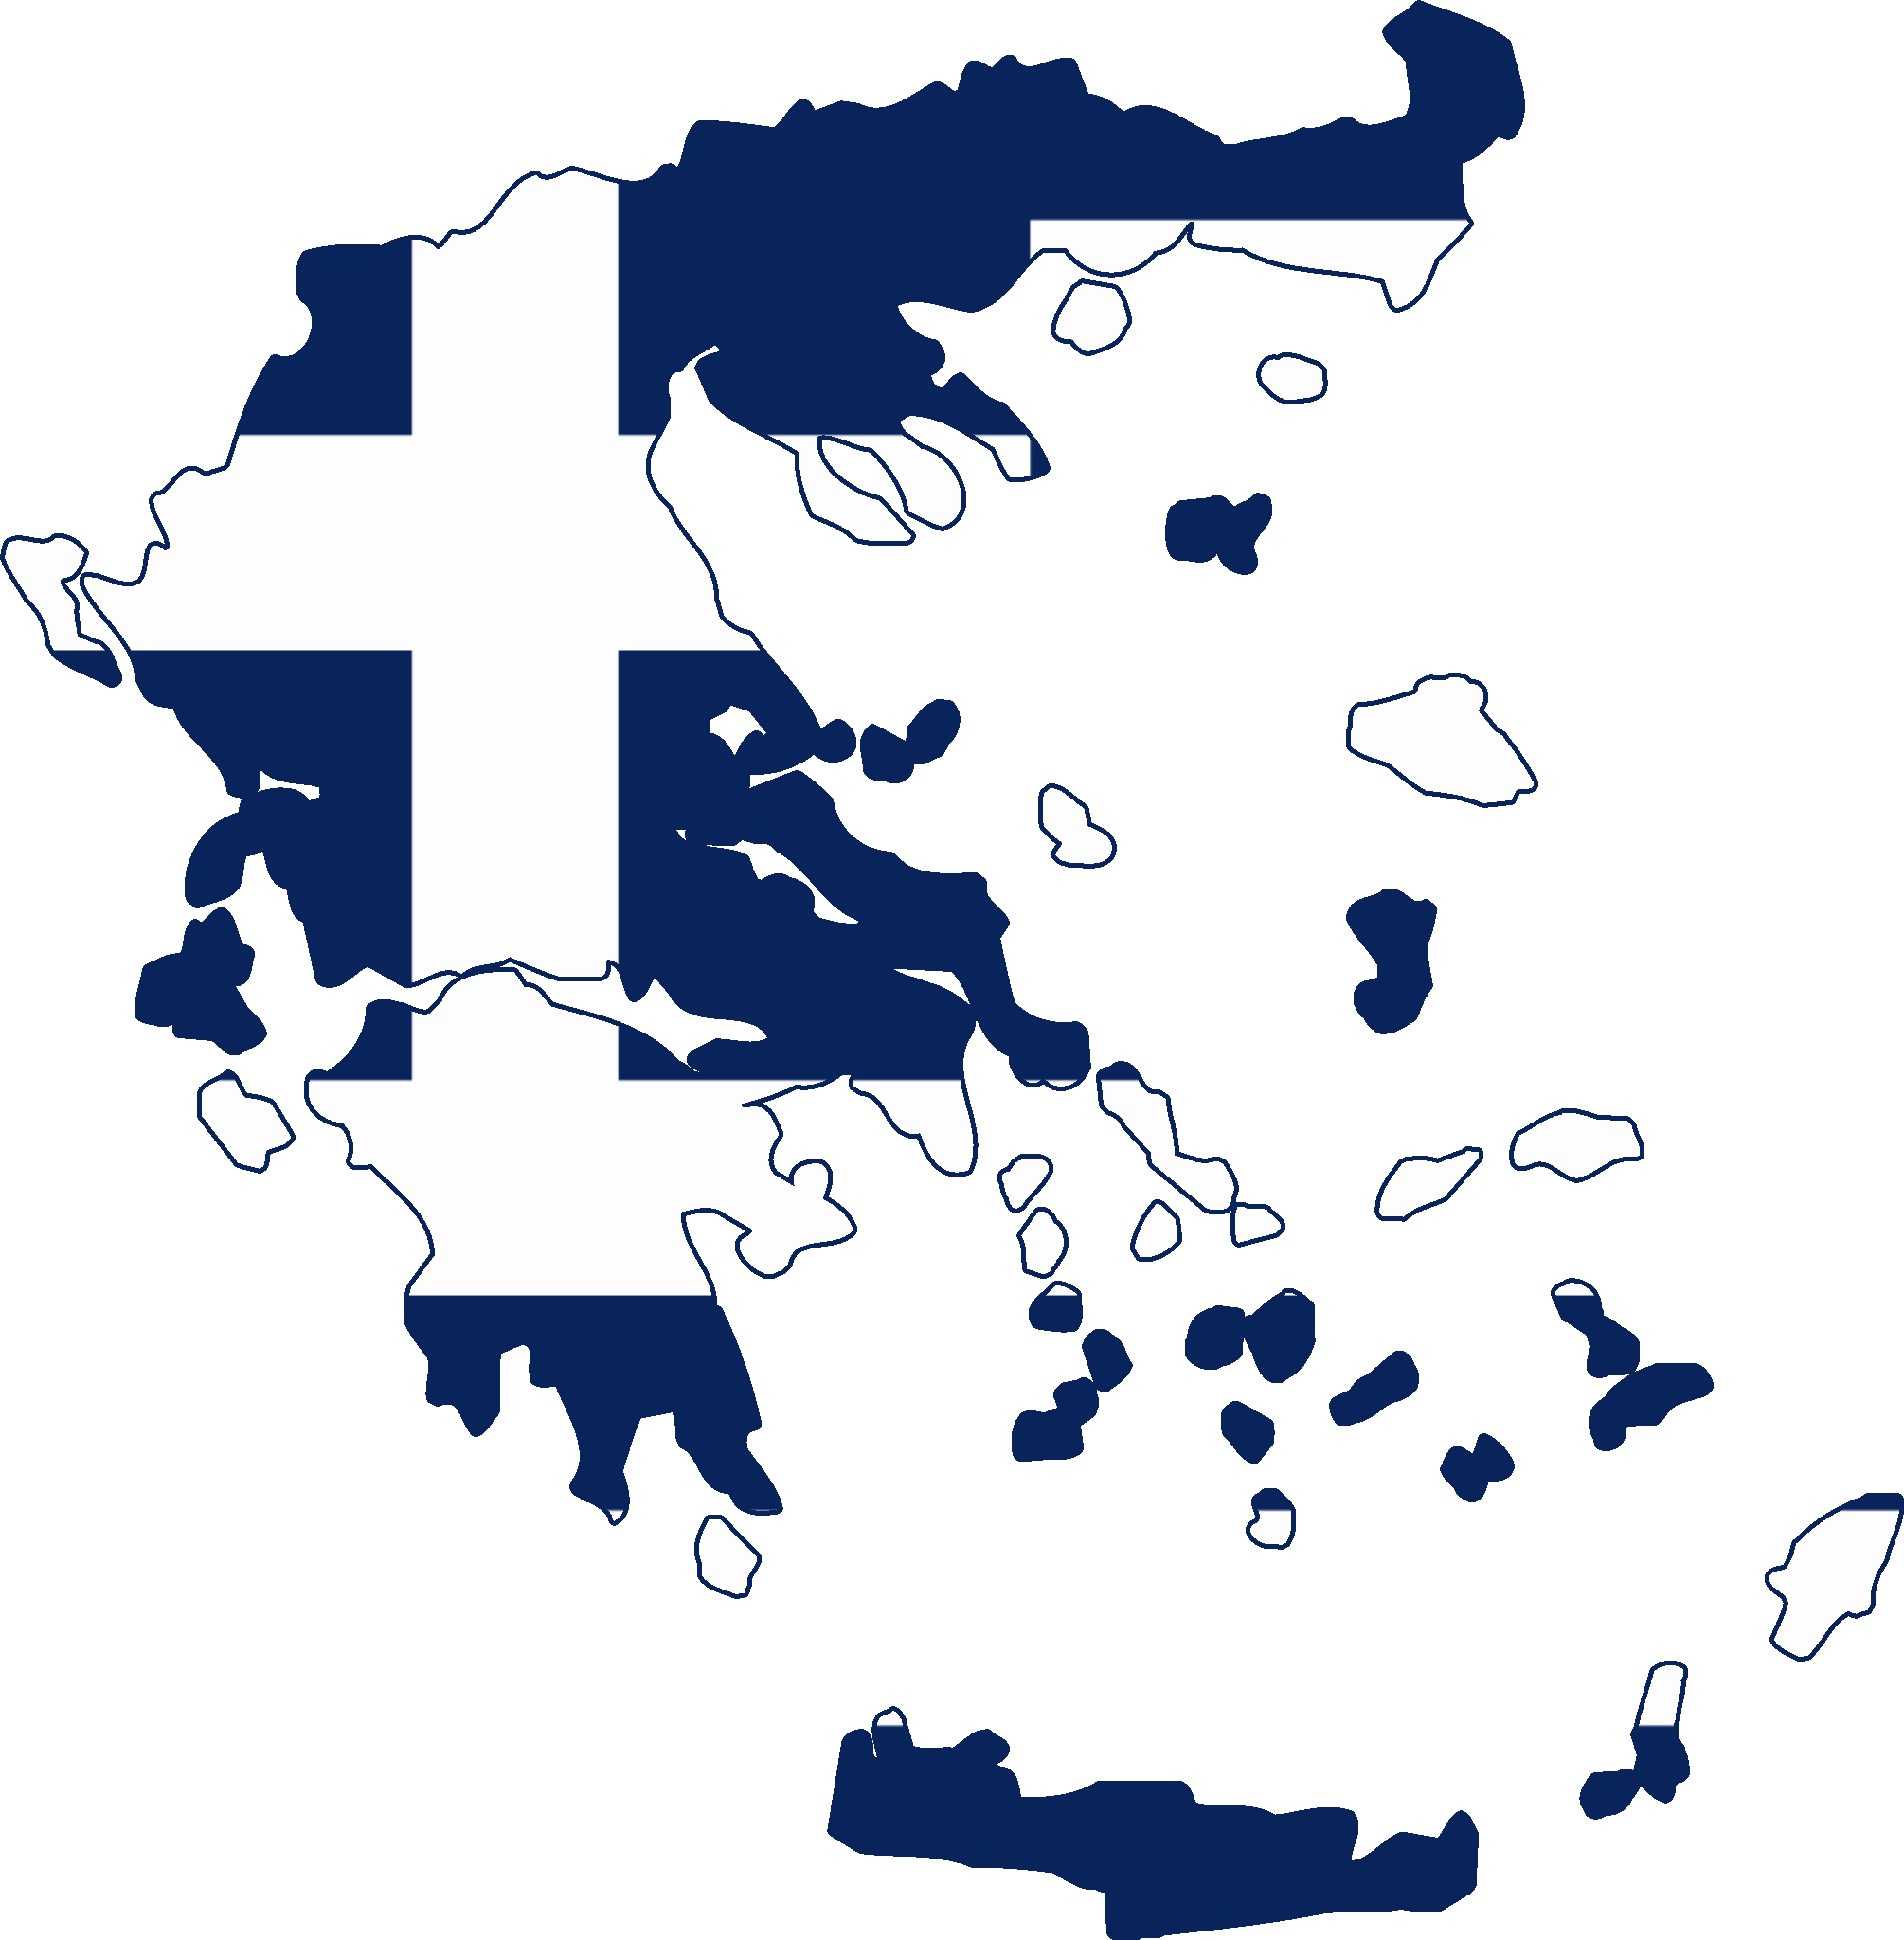 HD Greece Flag And Map Transparent PNG Image Download.